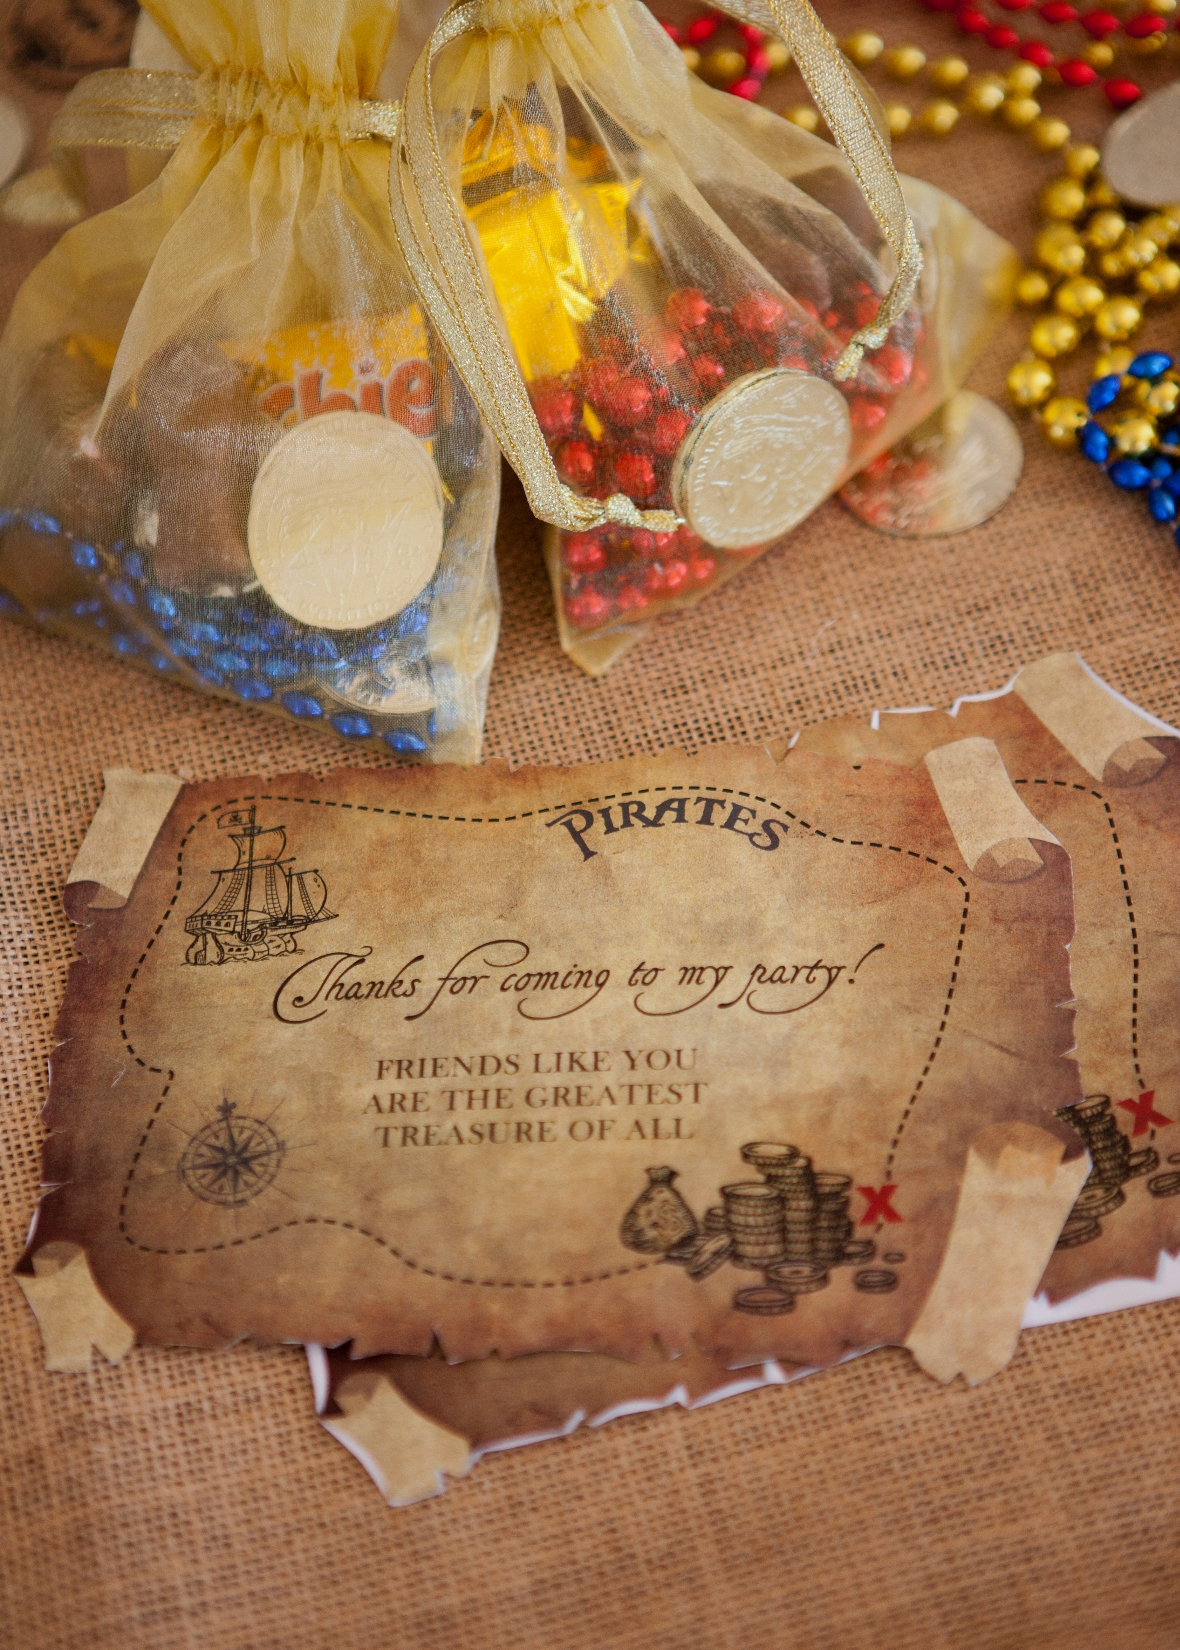 Plastic Gold Nuggets Decorations Favor Craft Western Pirate Birthday Party Event